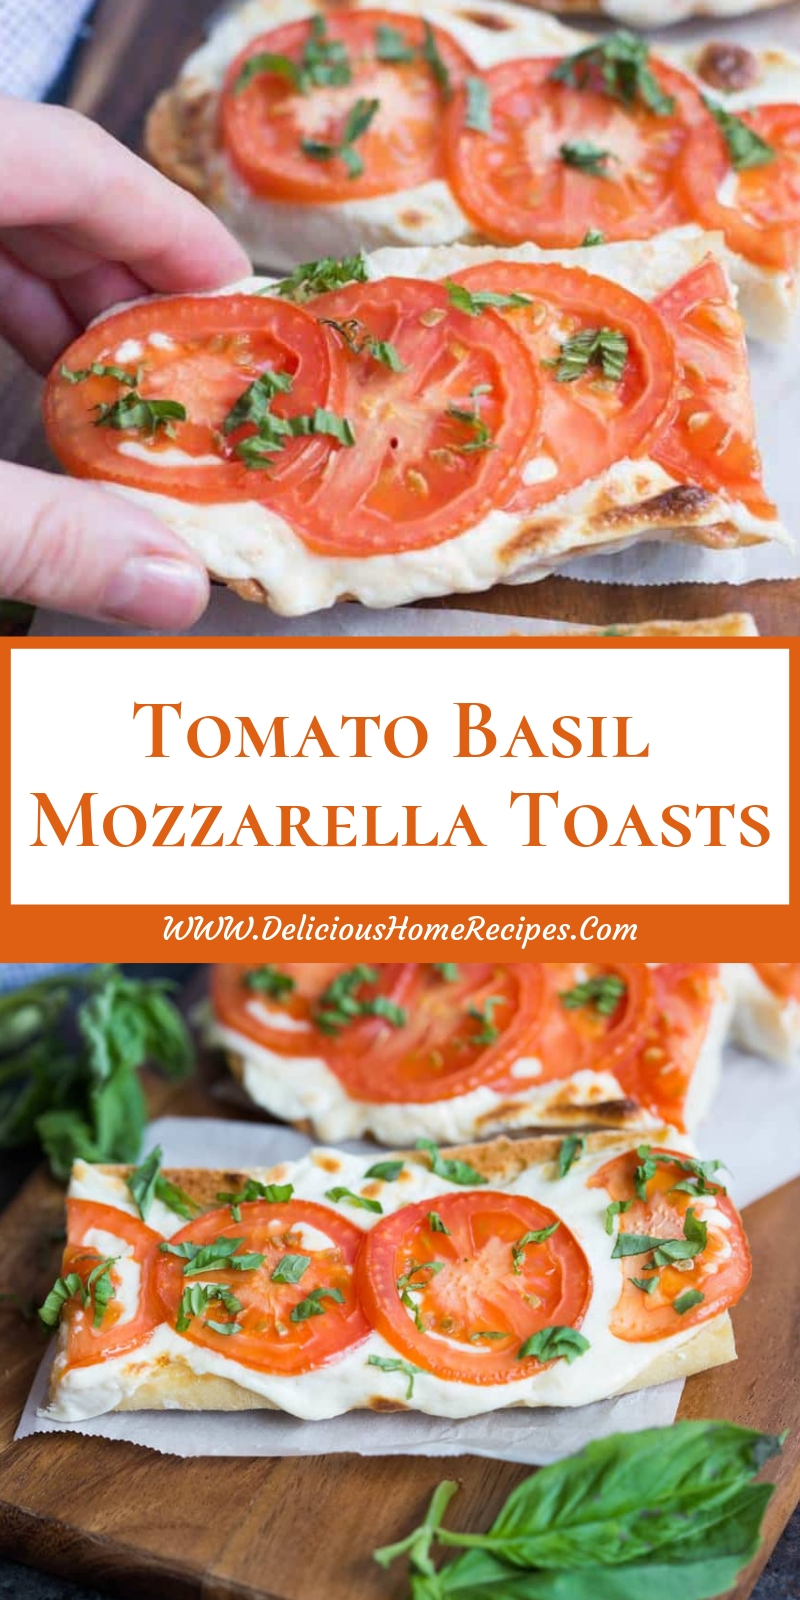 Tomato Basil Mozzarella Toasts